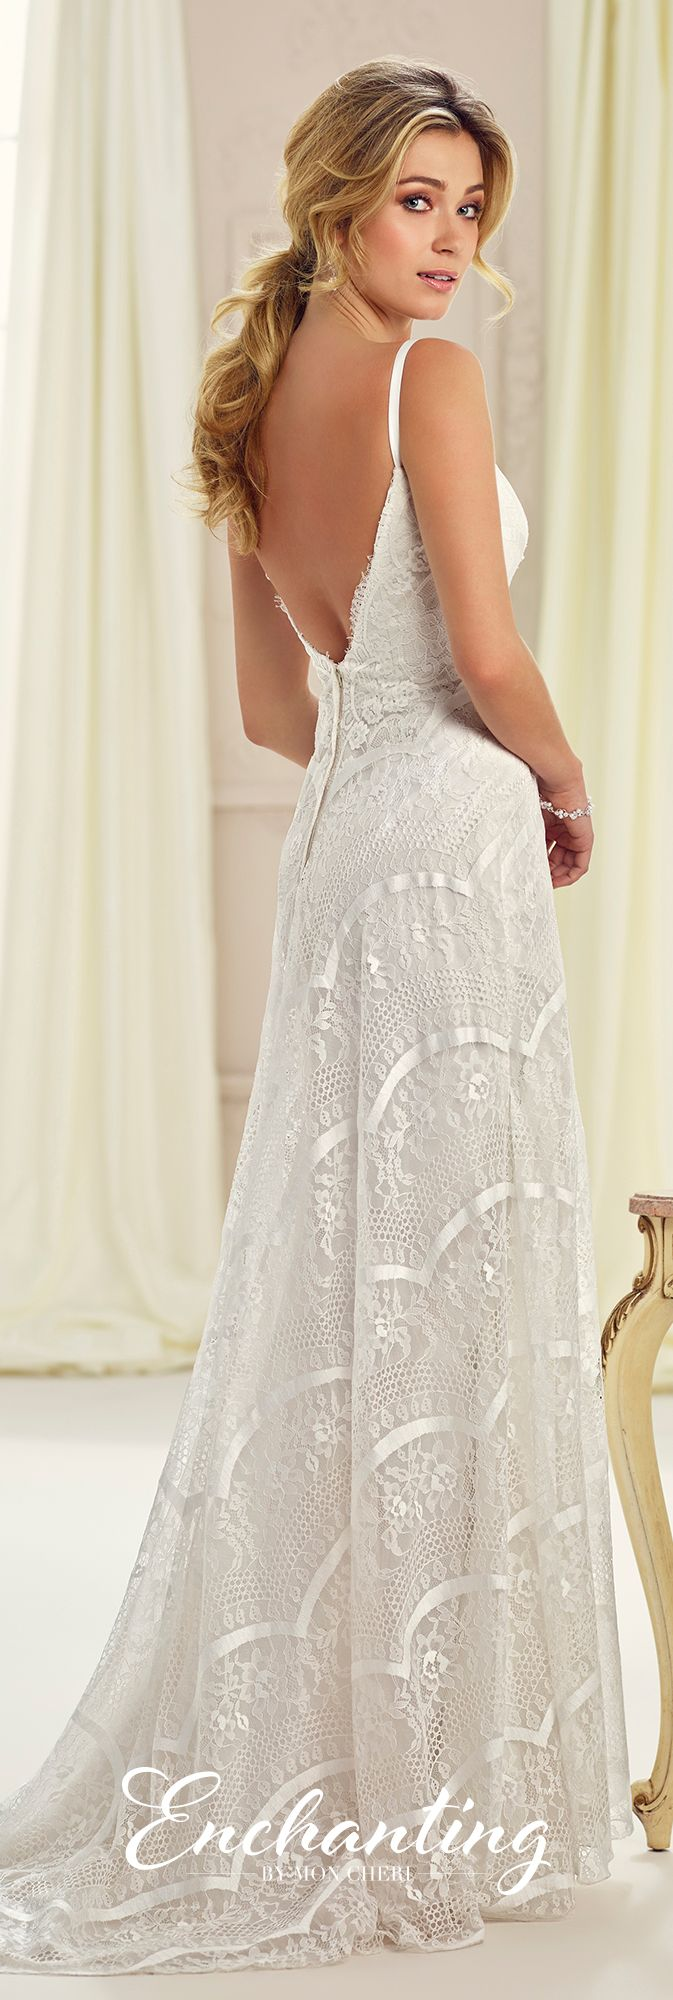 Enchanting by Mon Cheri Fall 2017 Collection - Style 217113 - sleeveless allover lace slim A-line wedding dress with V-back